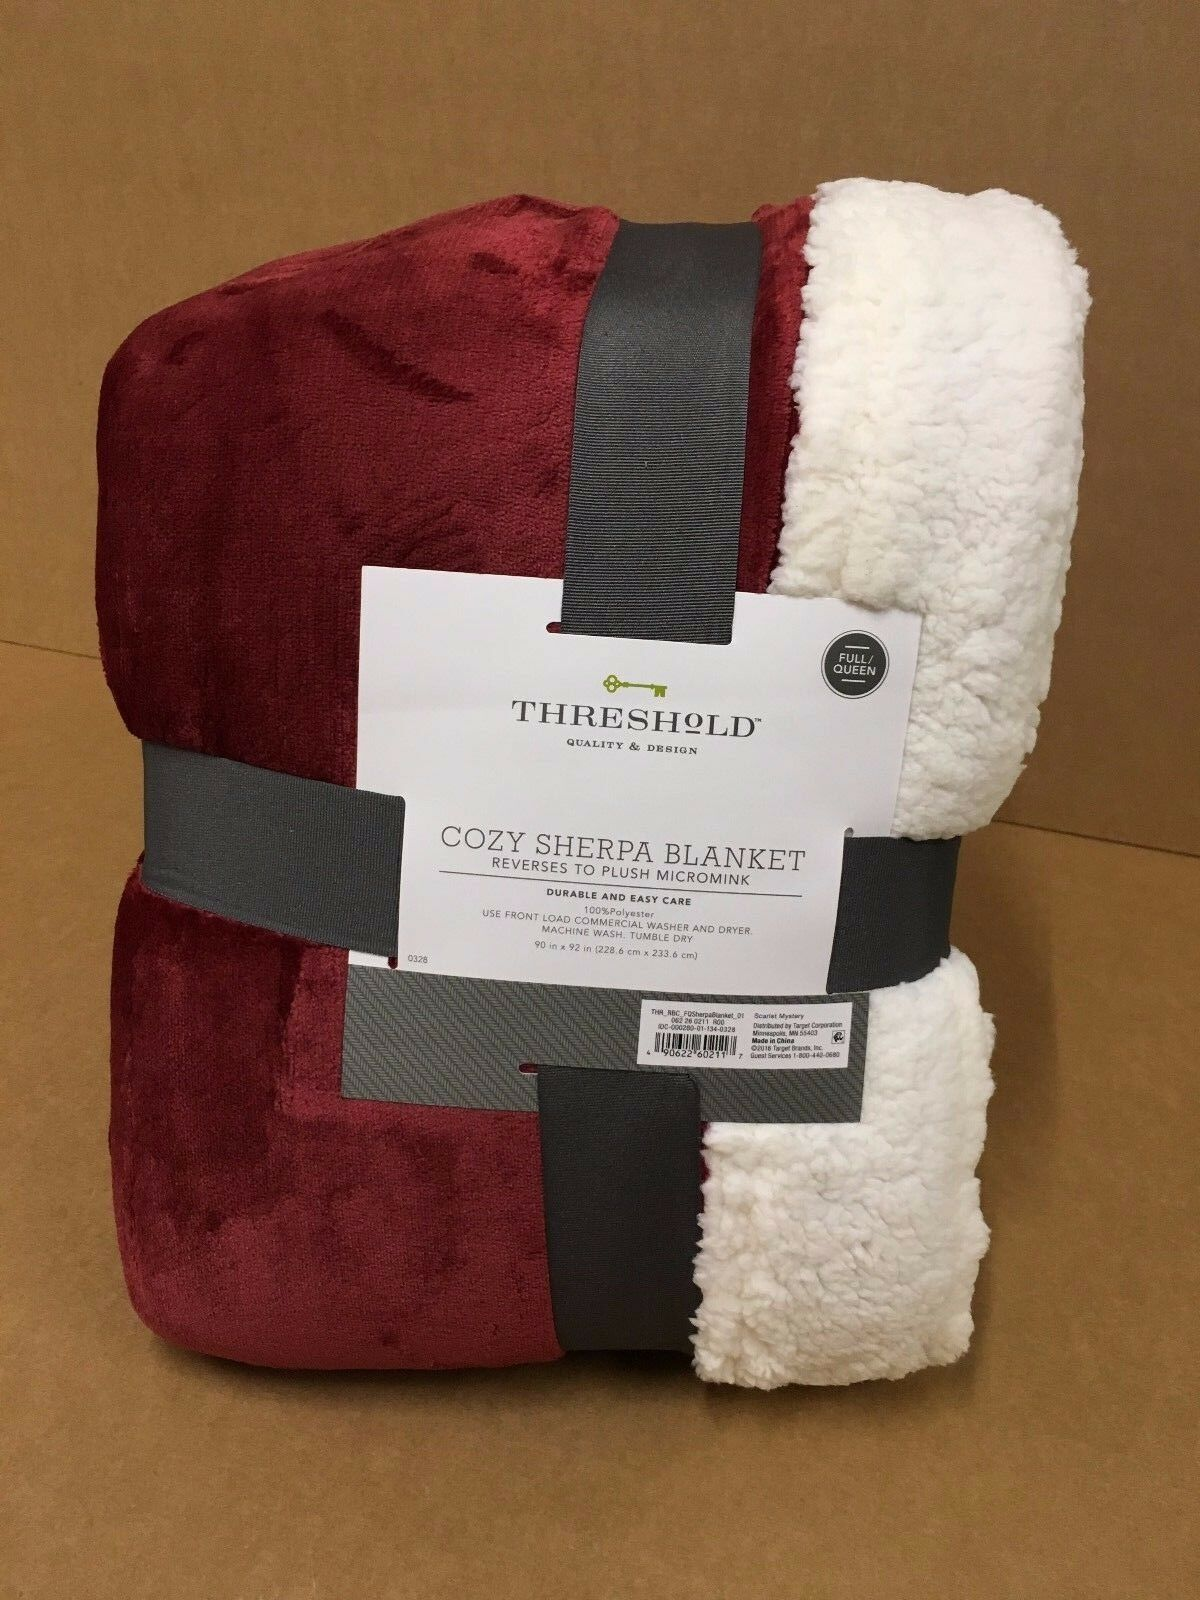 Threshold 90 in. x 92 in. Cozy Sherpa Blanket - Scarlet Myst